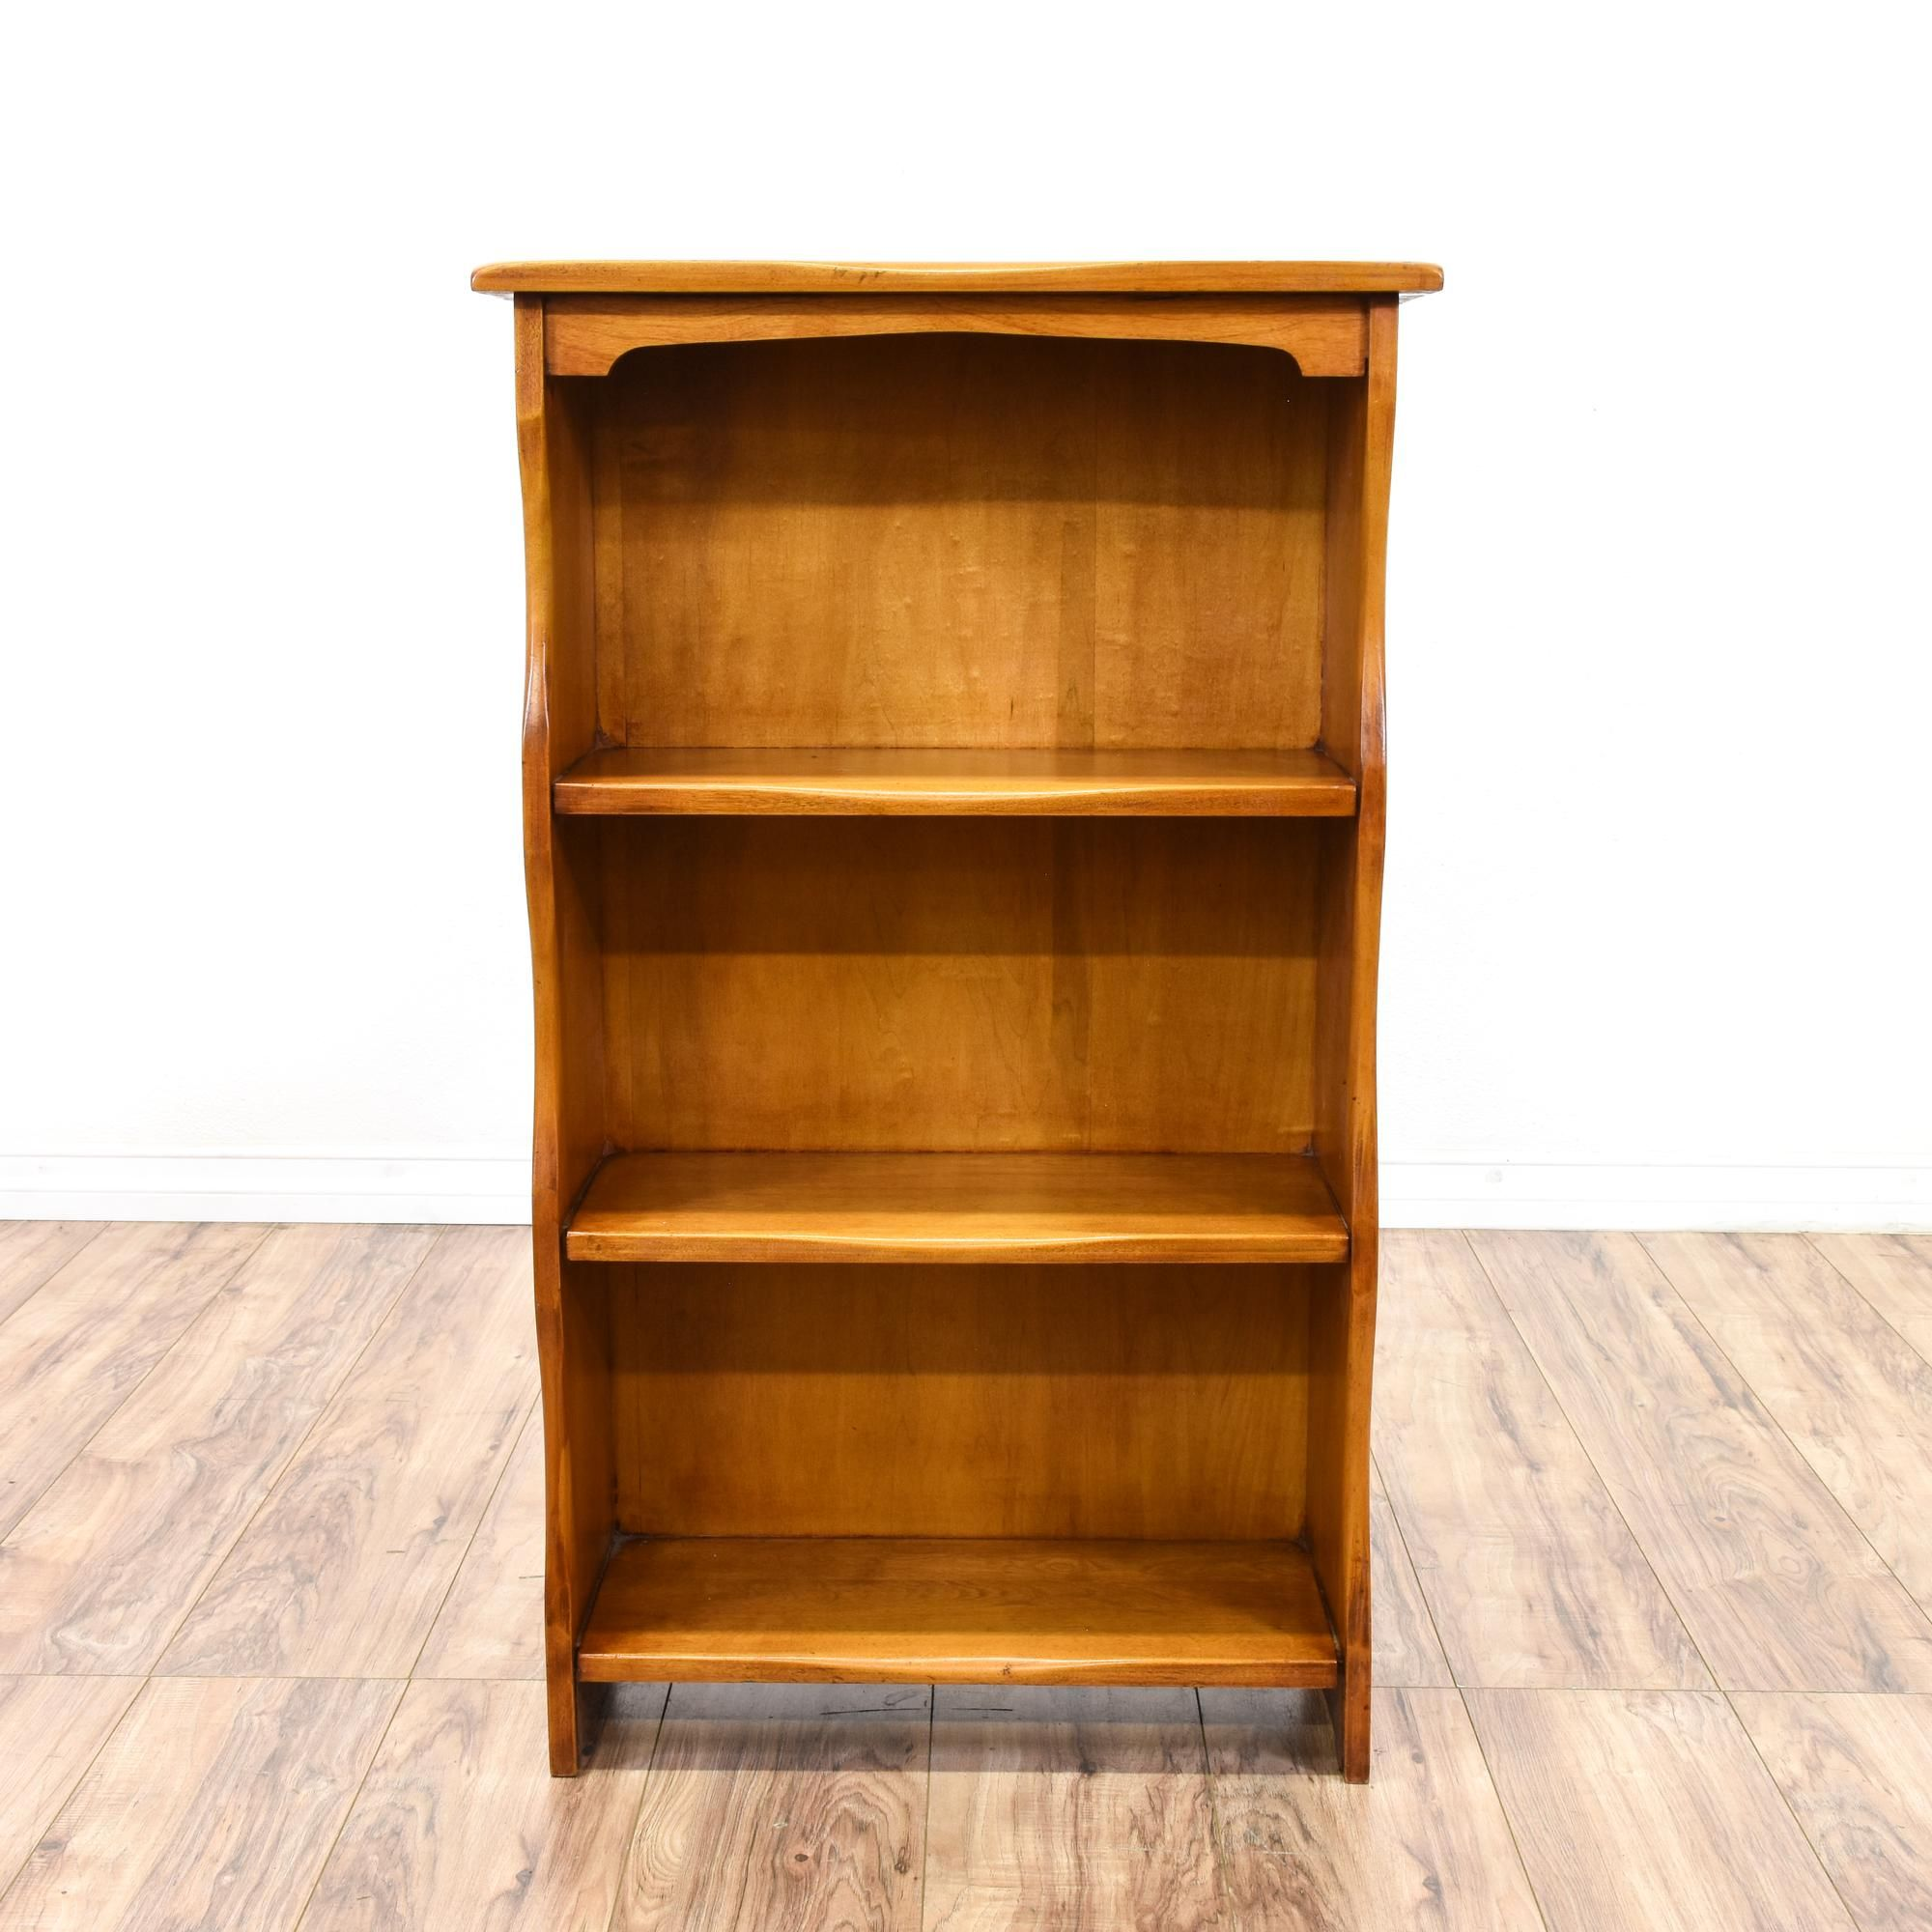 This Bookcase Is Featured In A Solid Wood With Glossy Maple Finish Country Style Bookshelf Has Curved Trim 3 Shelves And Sturdy Feet